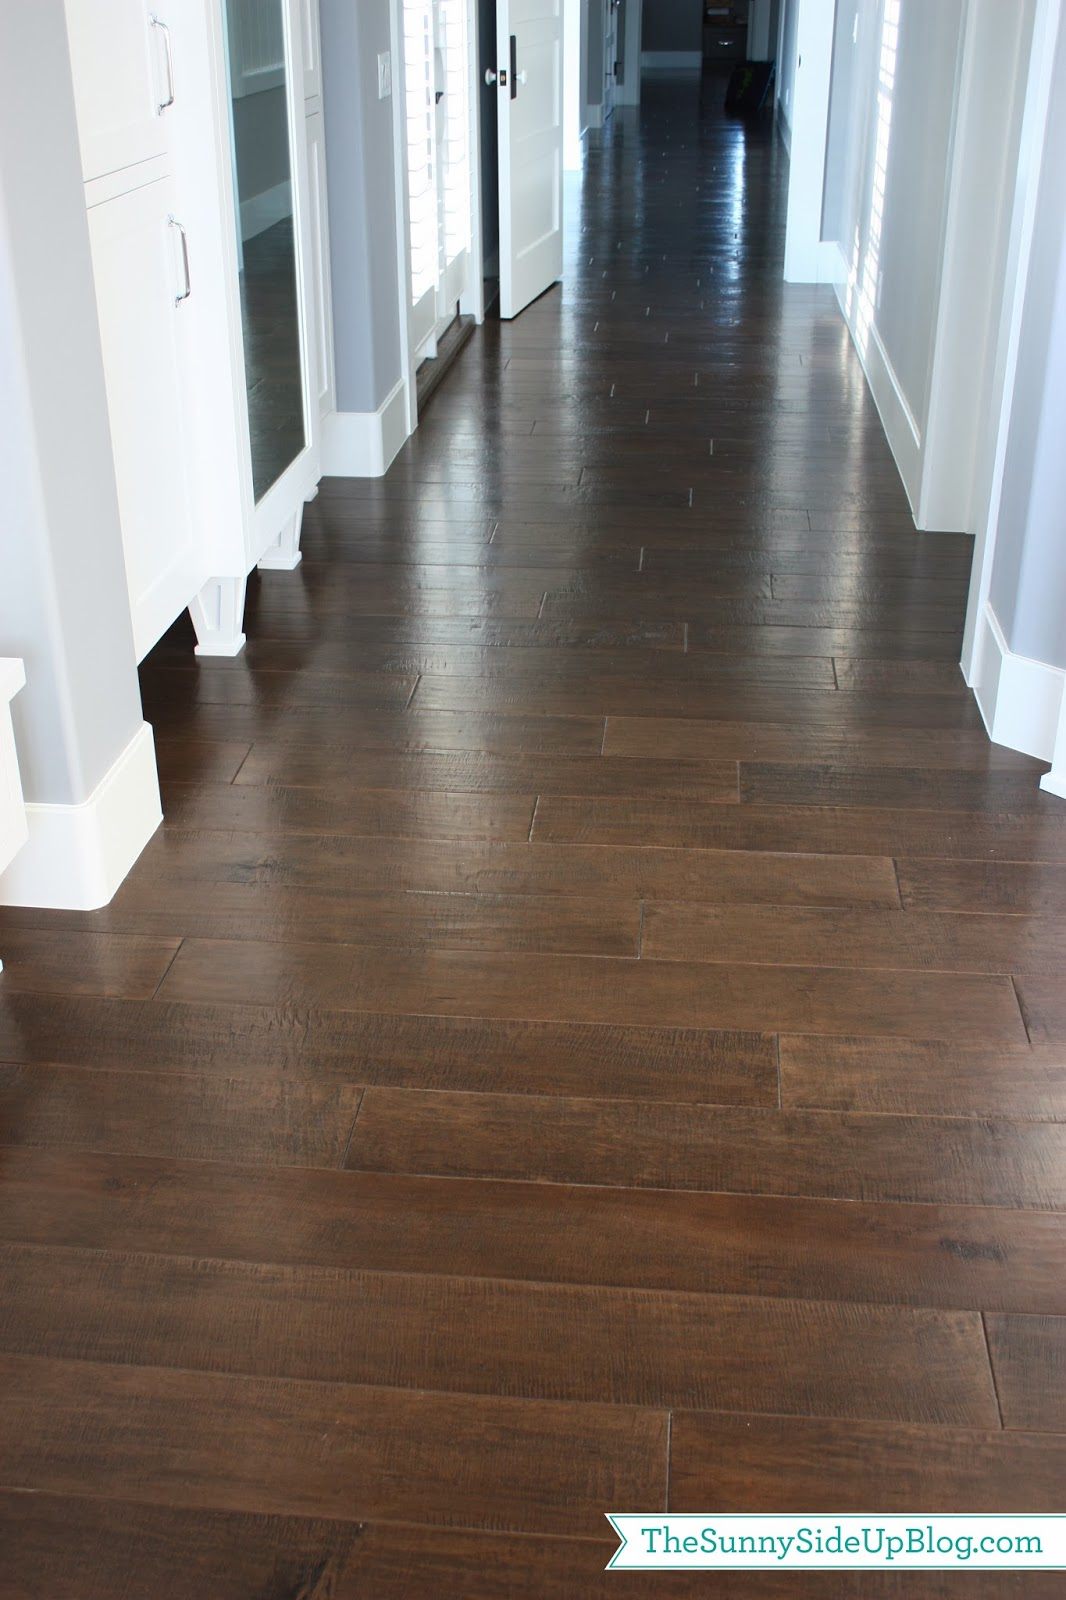 Wood Floor With Metal Inlay Design: The Sunny Side Up Blog